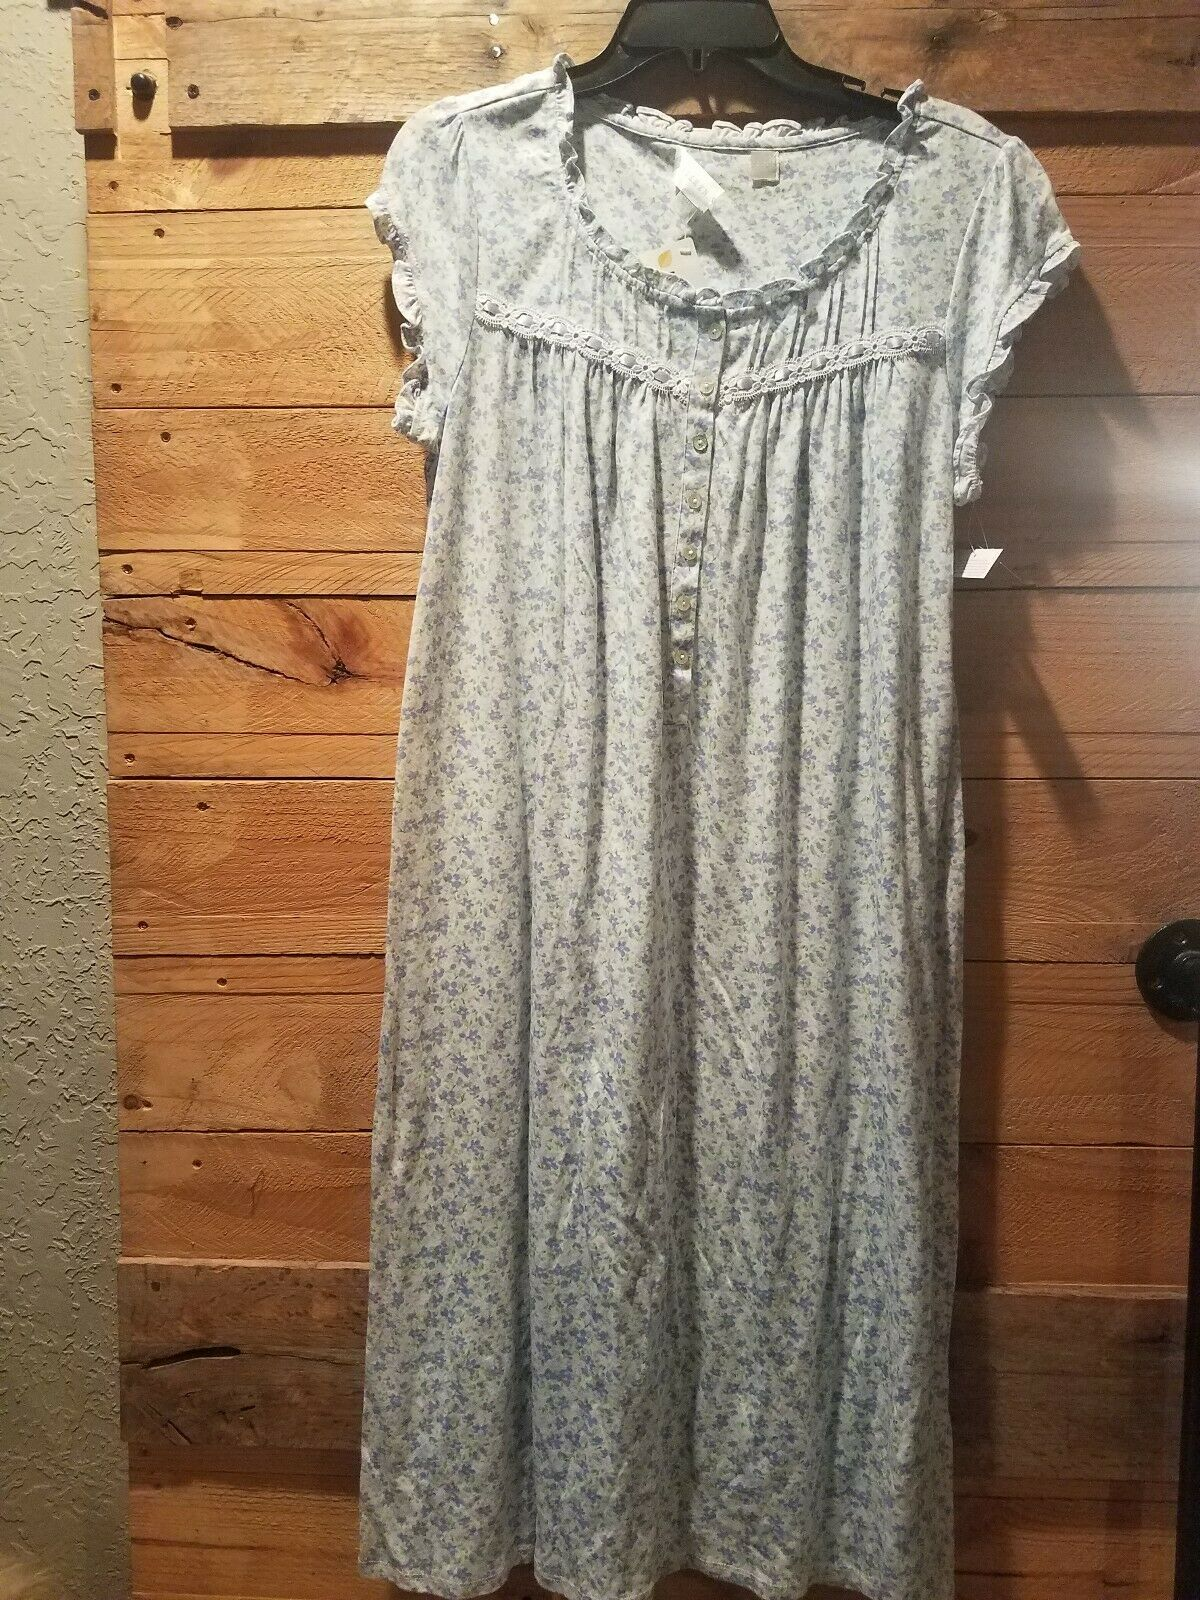 Eileen West purple floral print Nightgown Knit Cotton modal blend Size Small